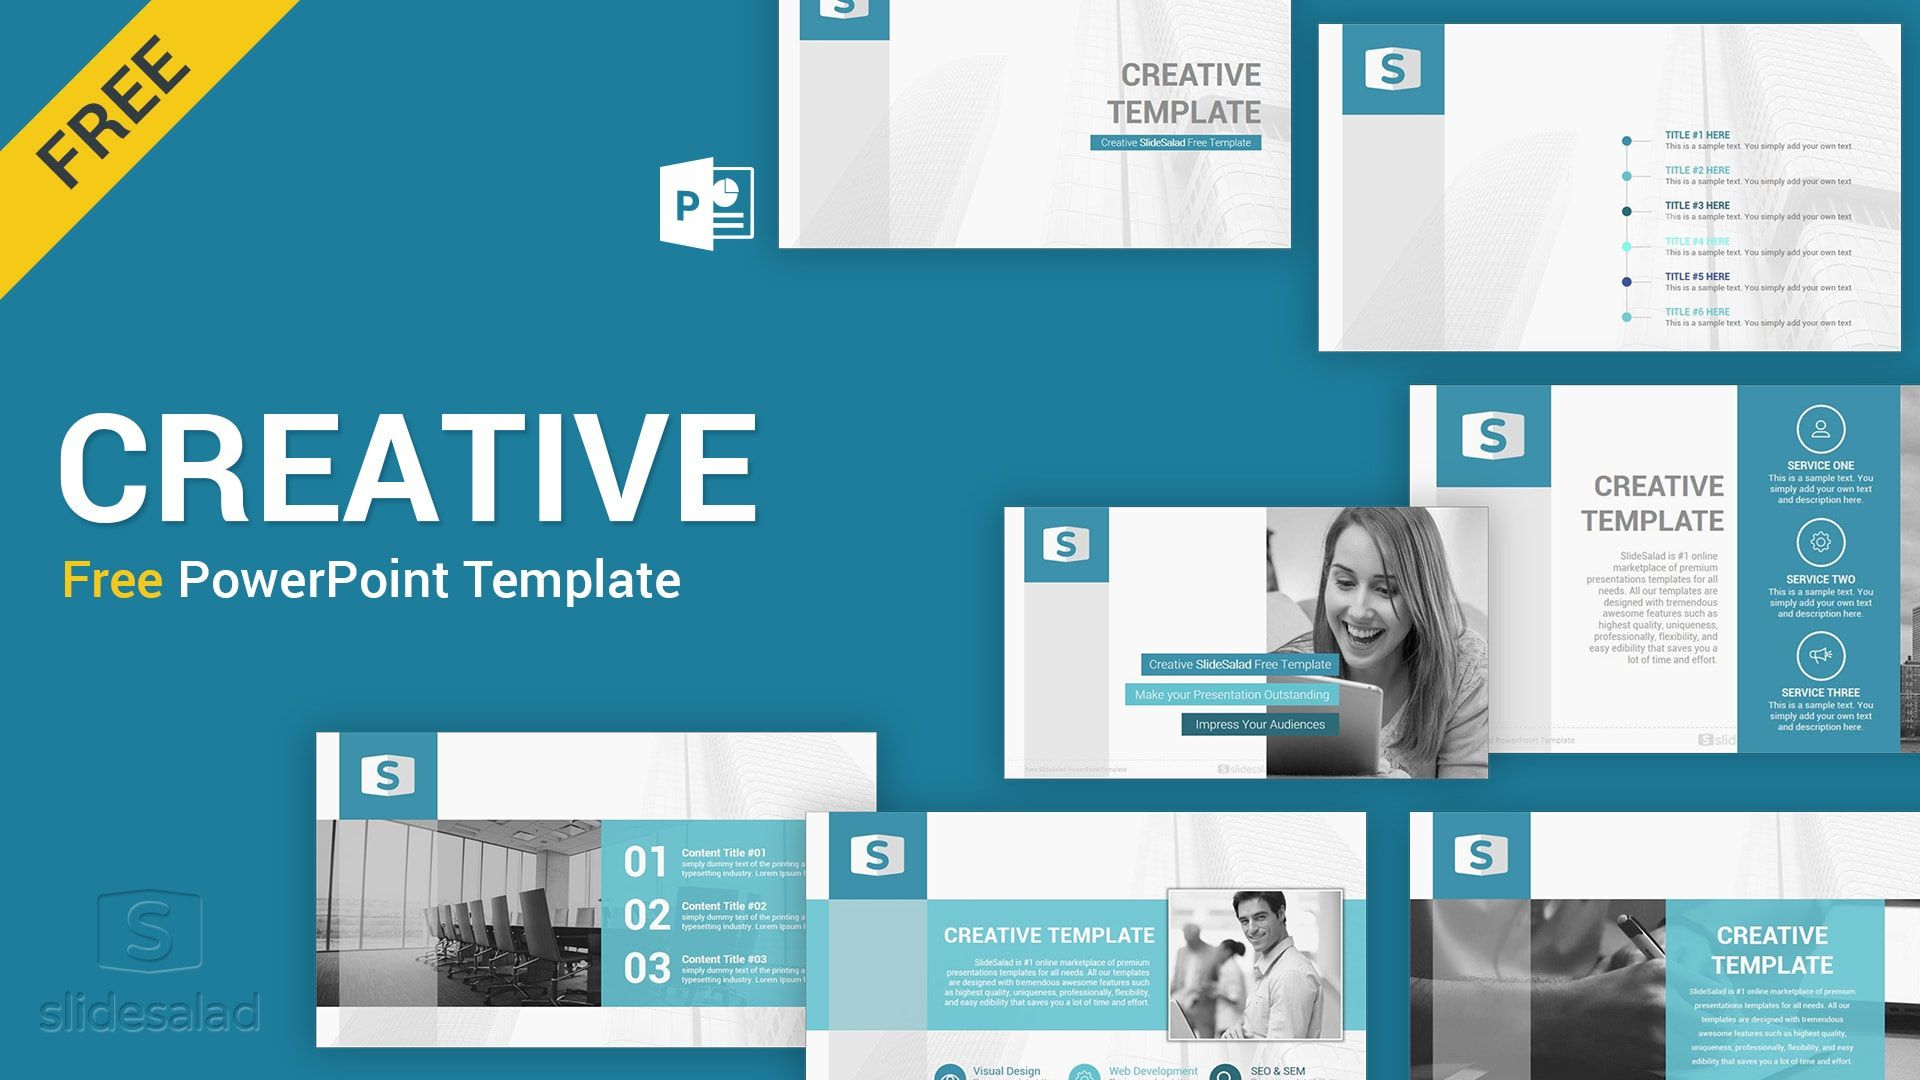 002 Dreaded Creative Powerpoint Template Free Sample  Download Ppt For TeacherFull